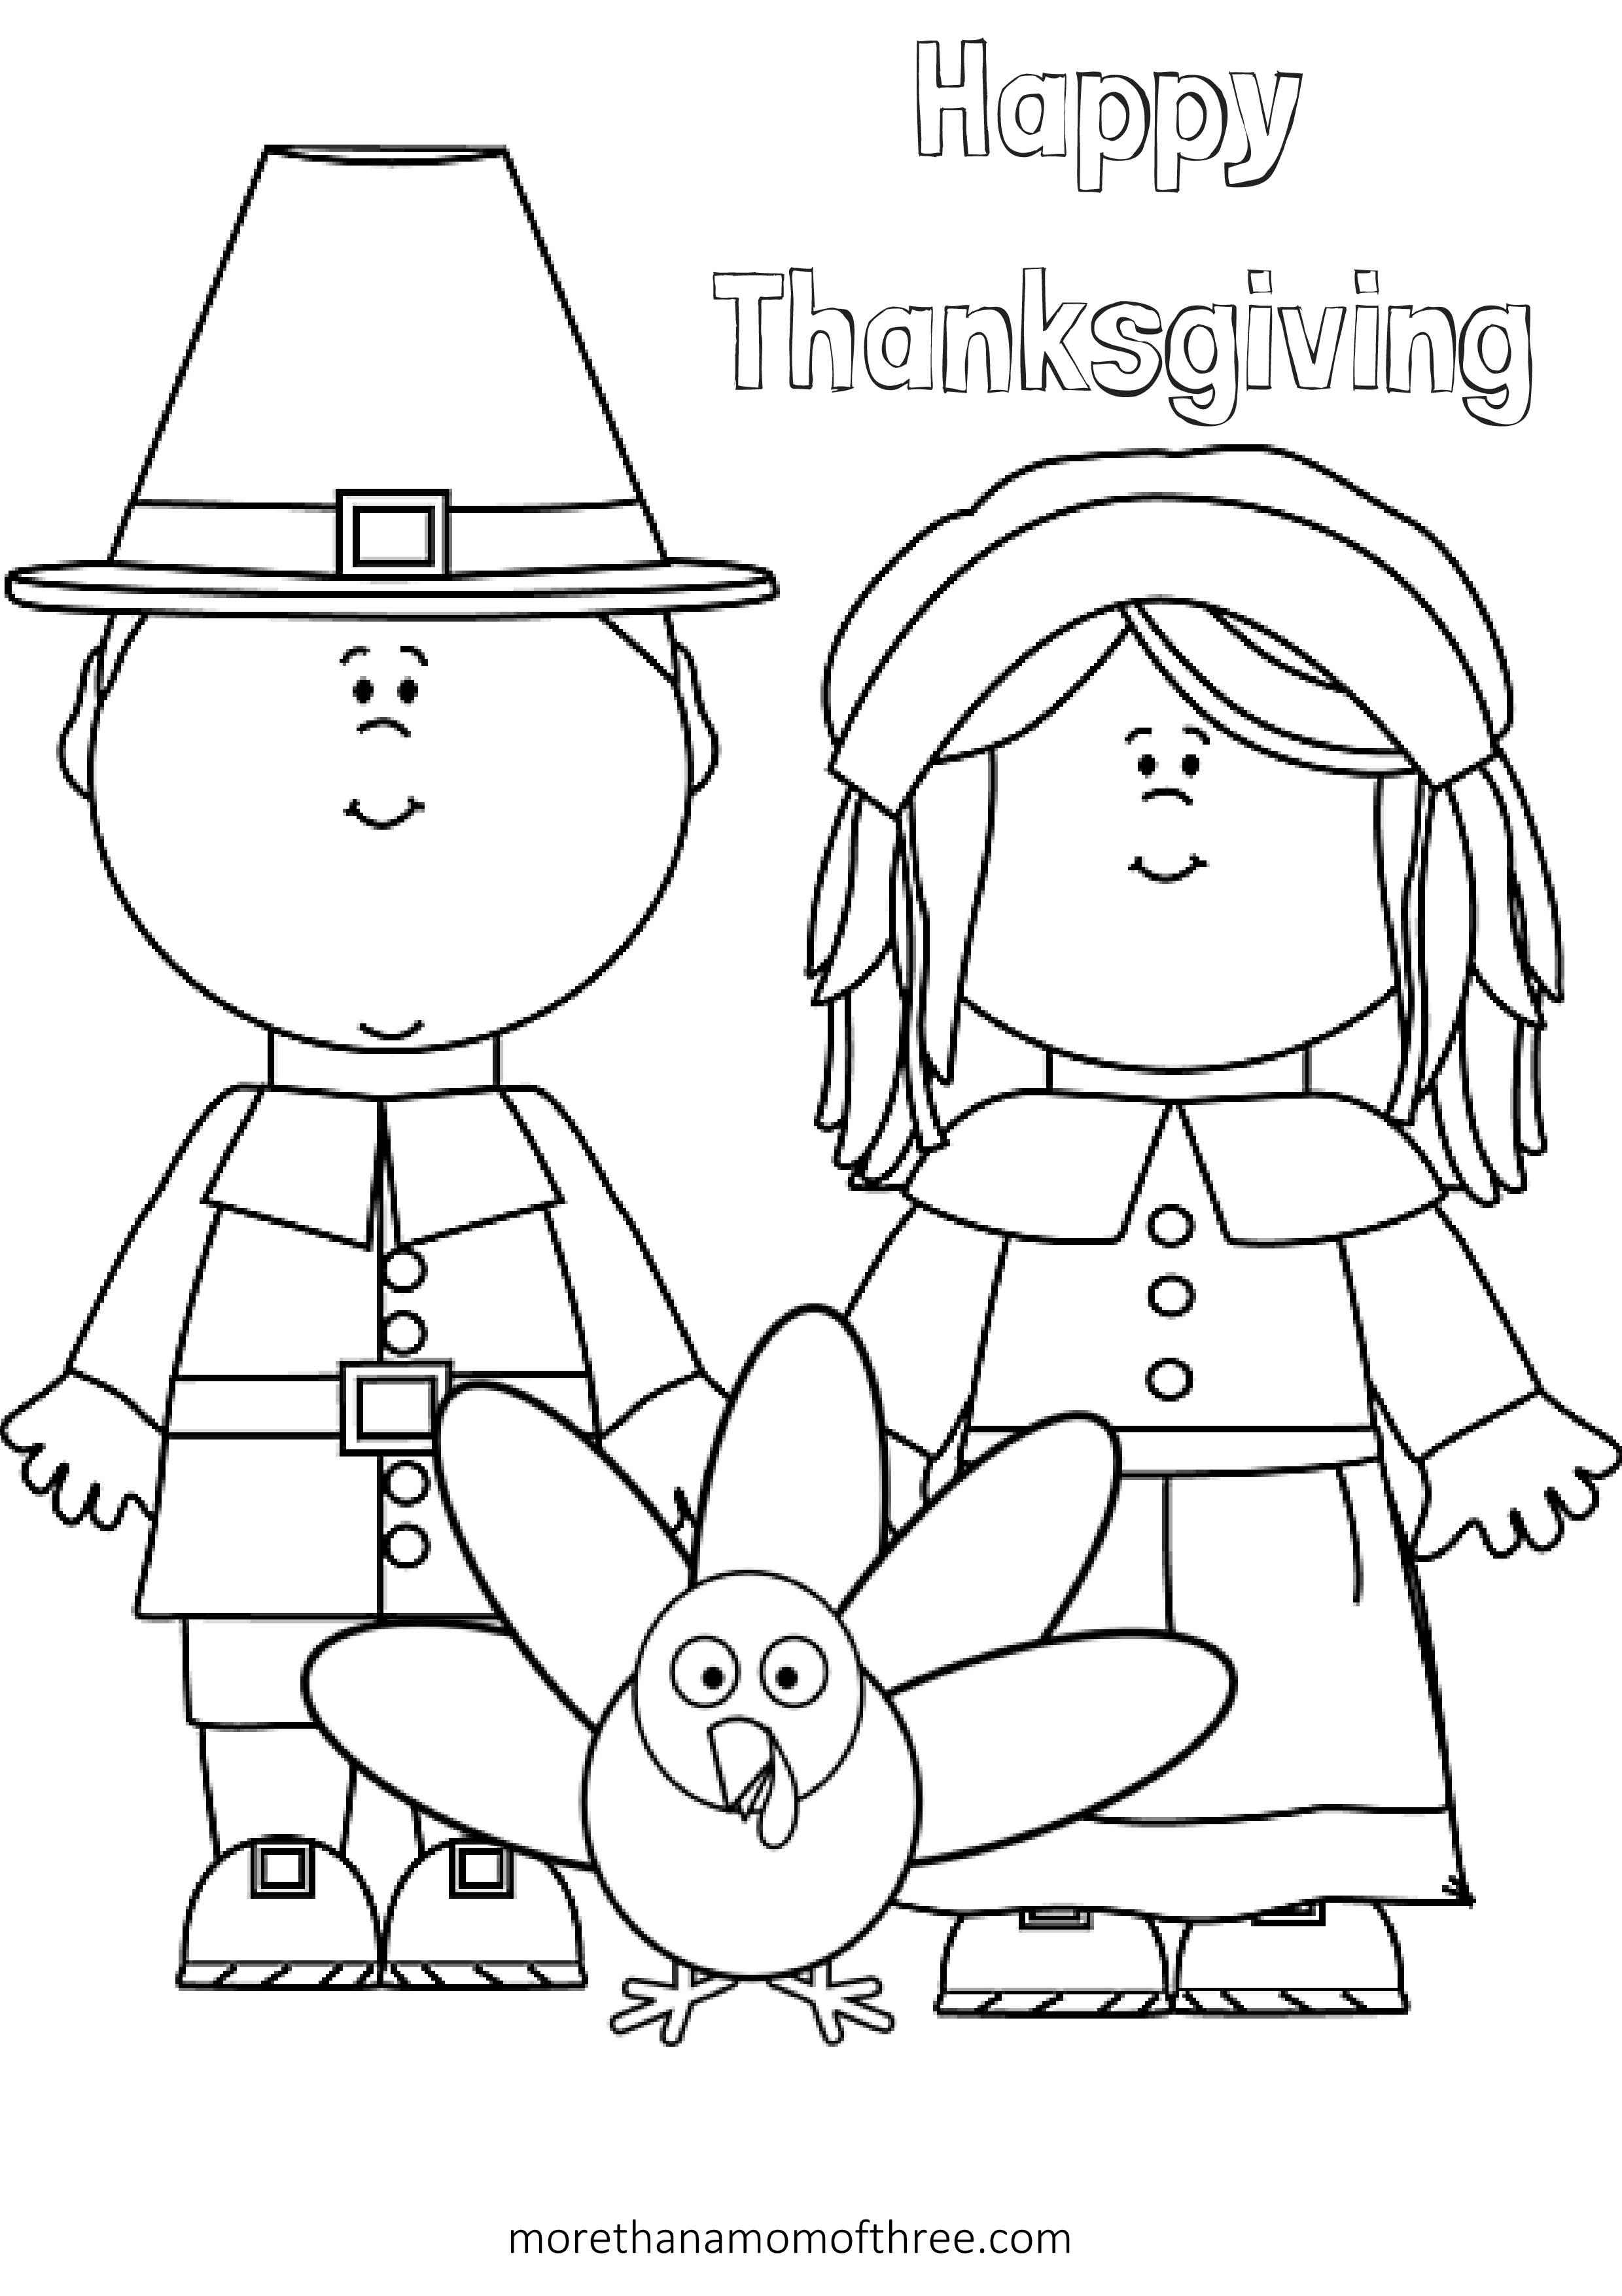 thanksgiving day coloring pages happy thanksgiving coloring pages 001 thanksgiving day pages coloring